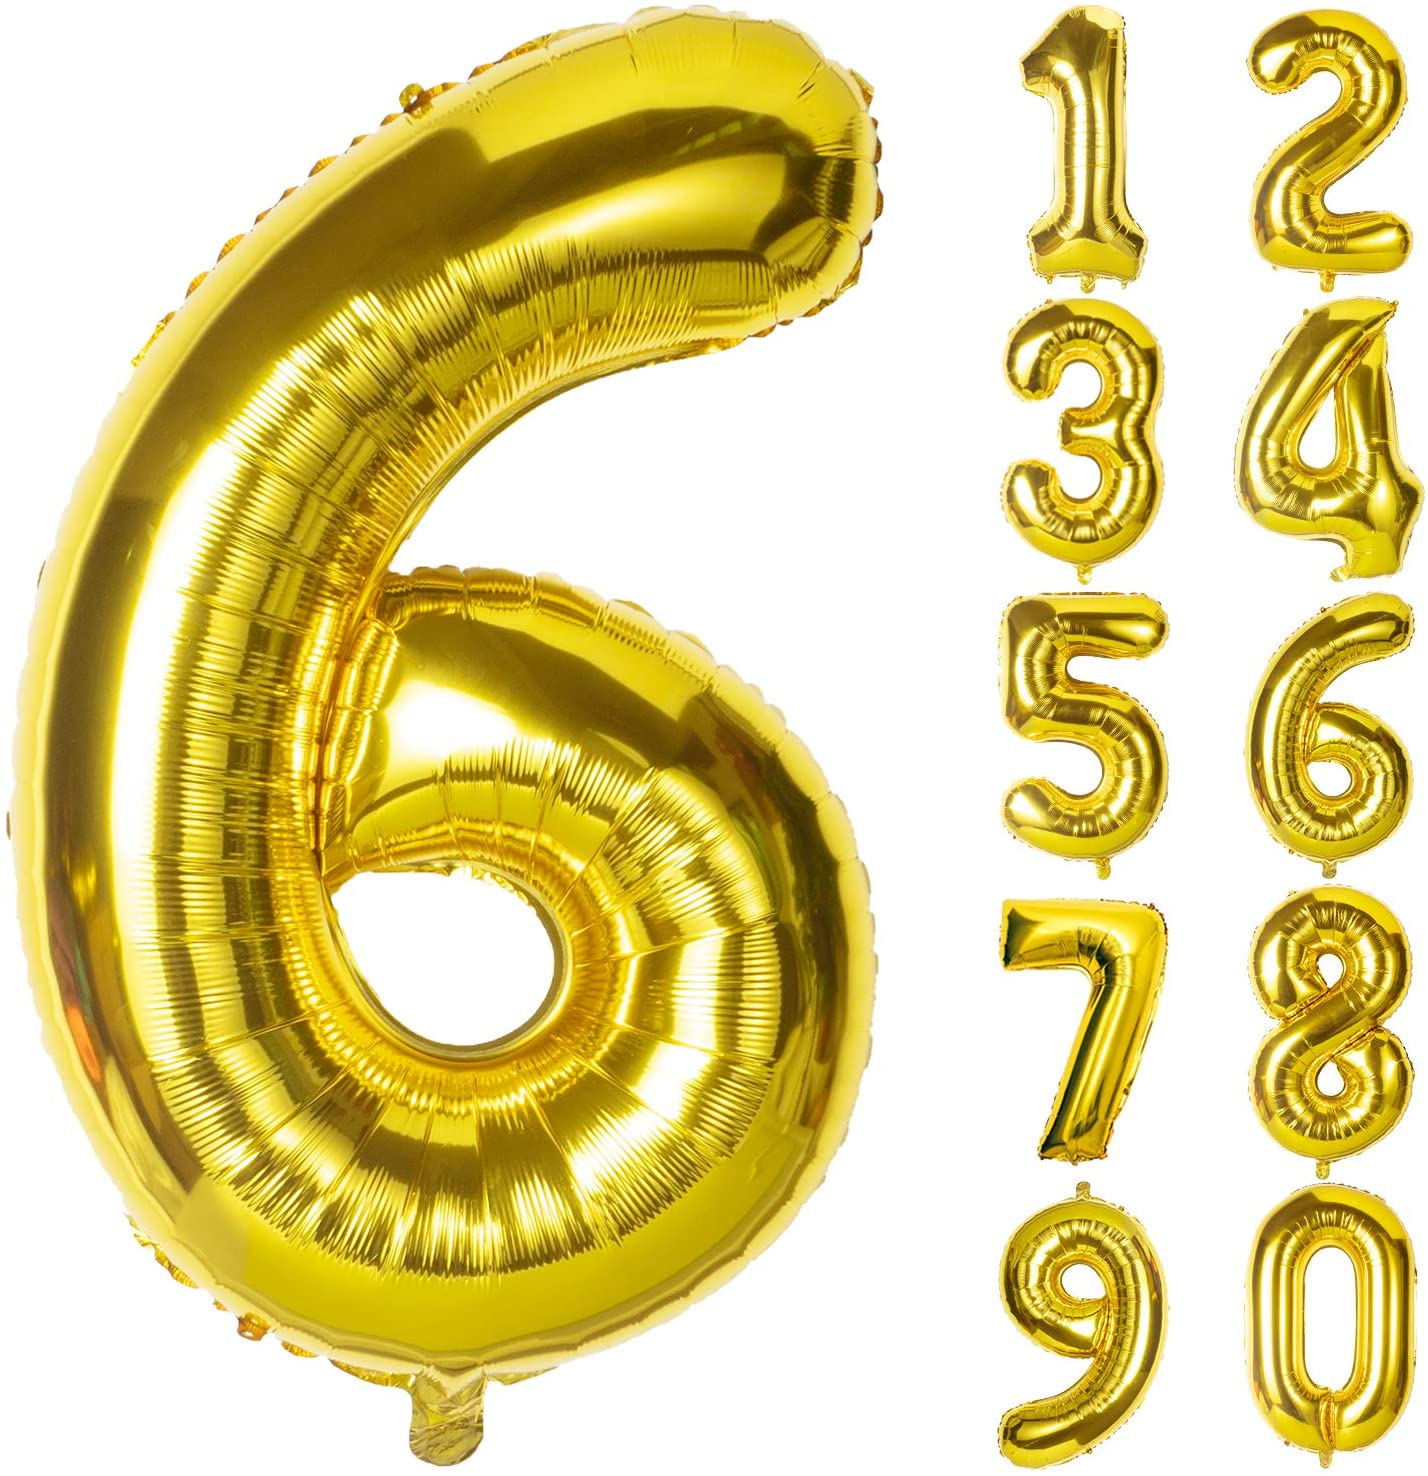 Gold Number 6 Balloon 40 Inch Giant Balloon for Birthday Parties, Anniversary Celebrations, Wedding Anniversary Decorations